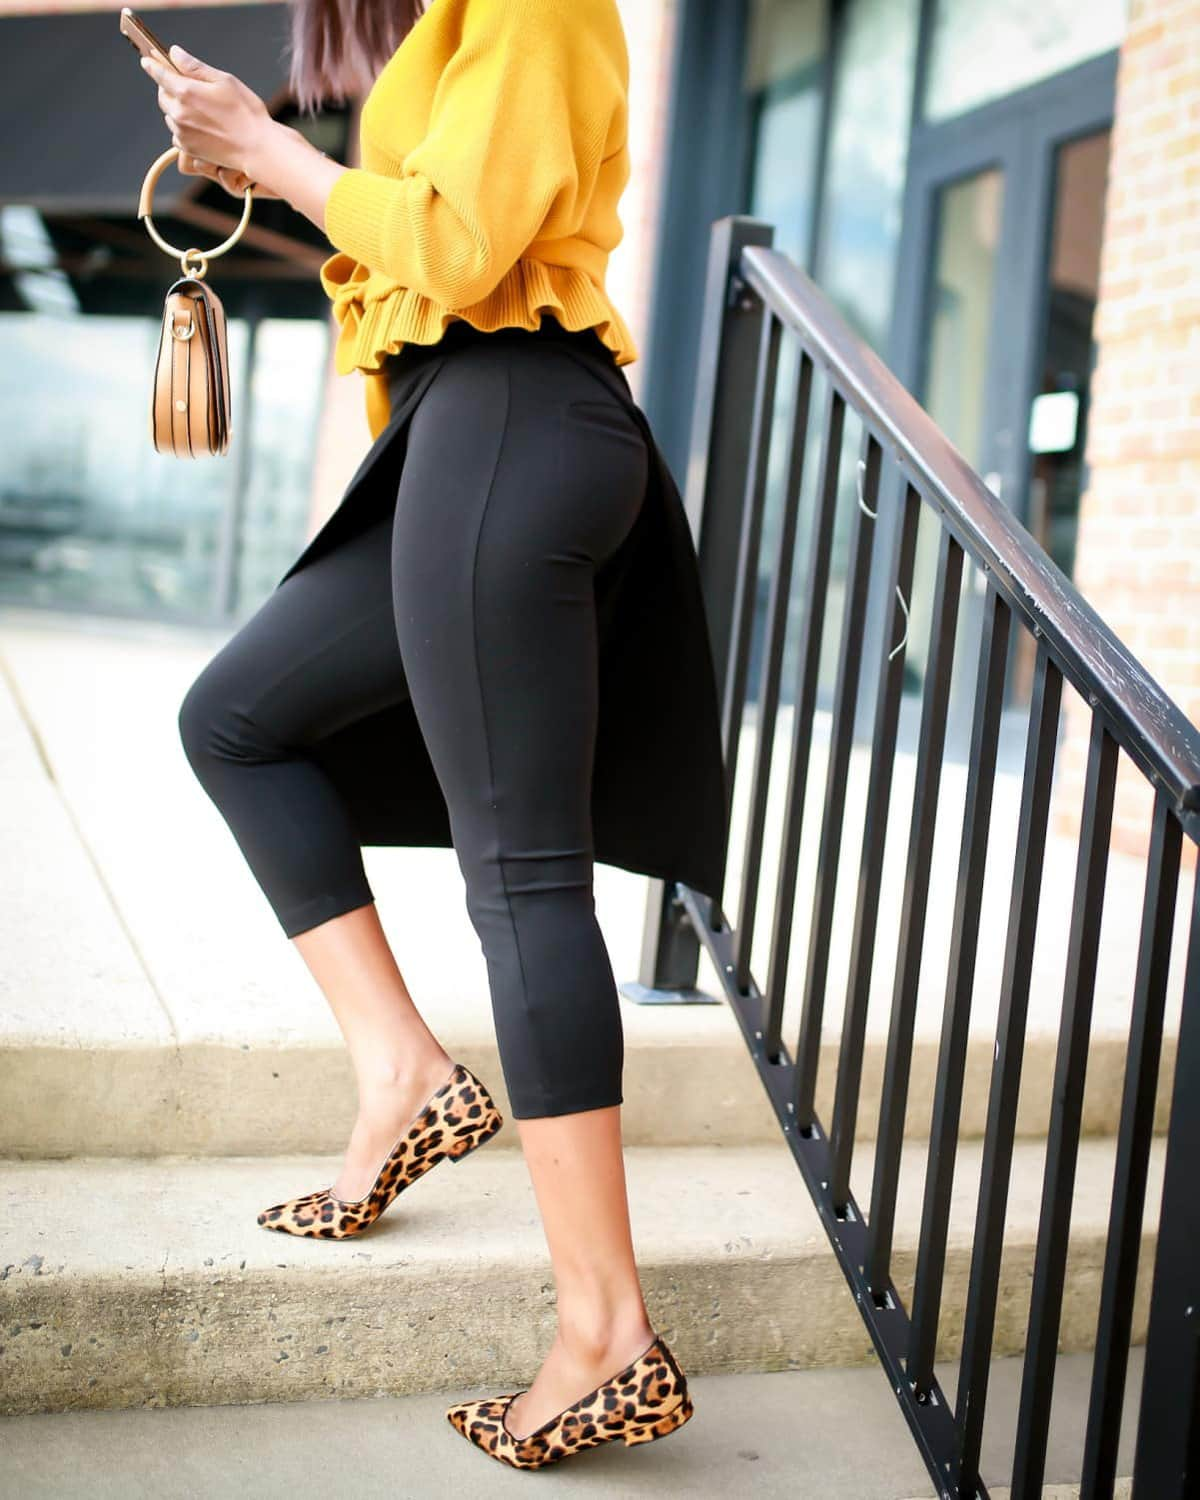 Betabrand is well known for its popular yoga work pants. But have you tried the Betabrand Sassiest pants? A hidden gem or too sassy for work? Here's what I discovered.